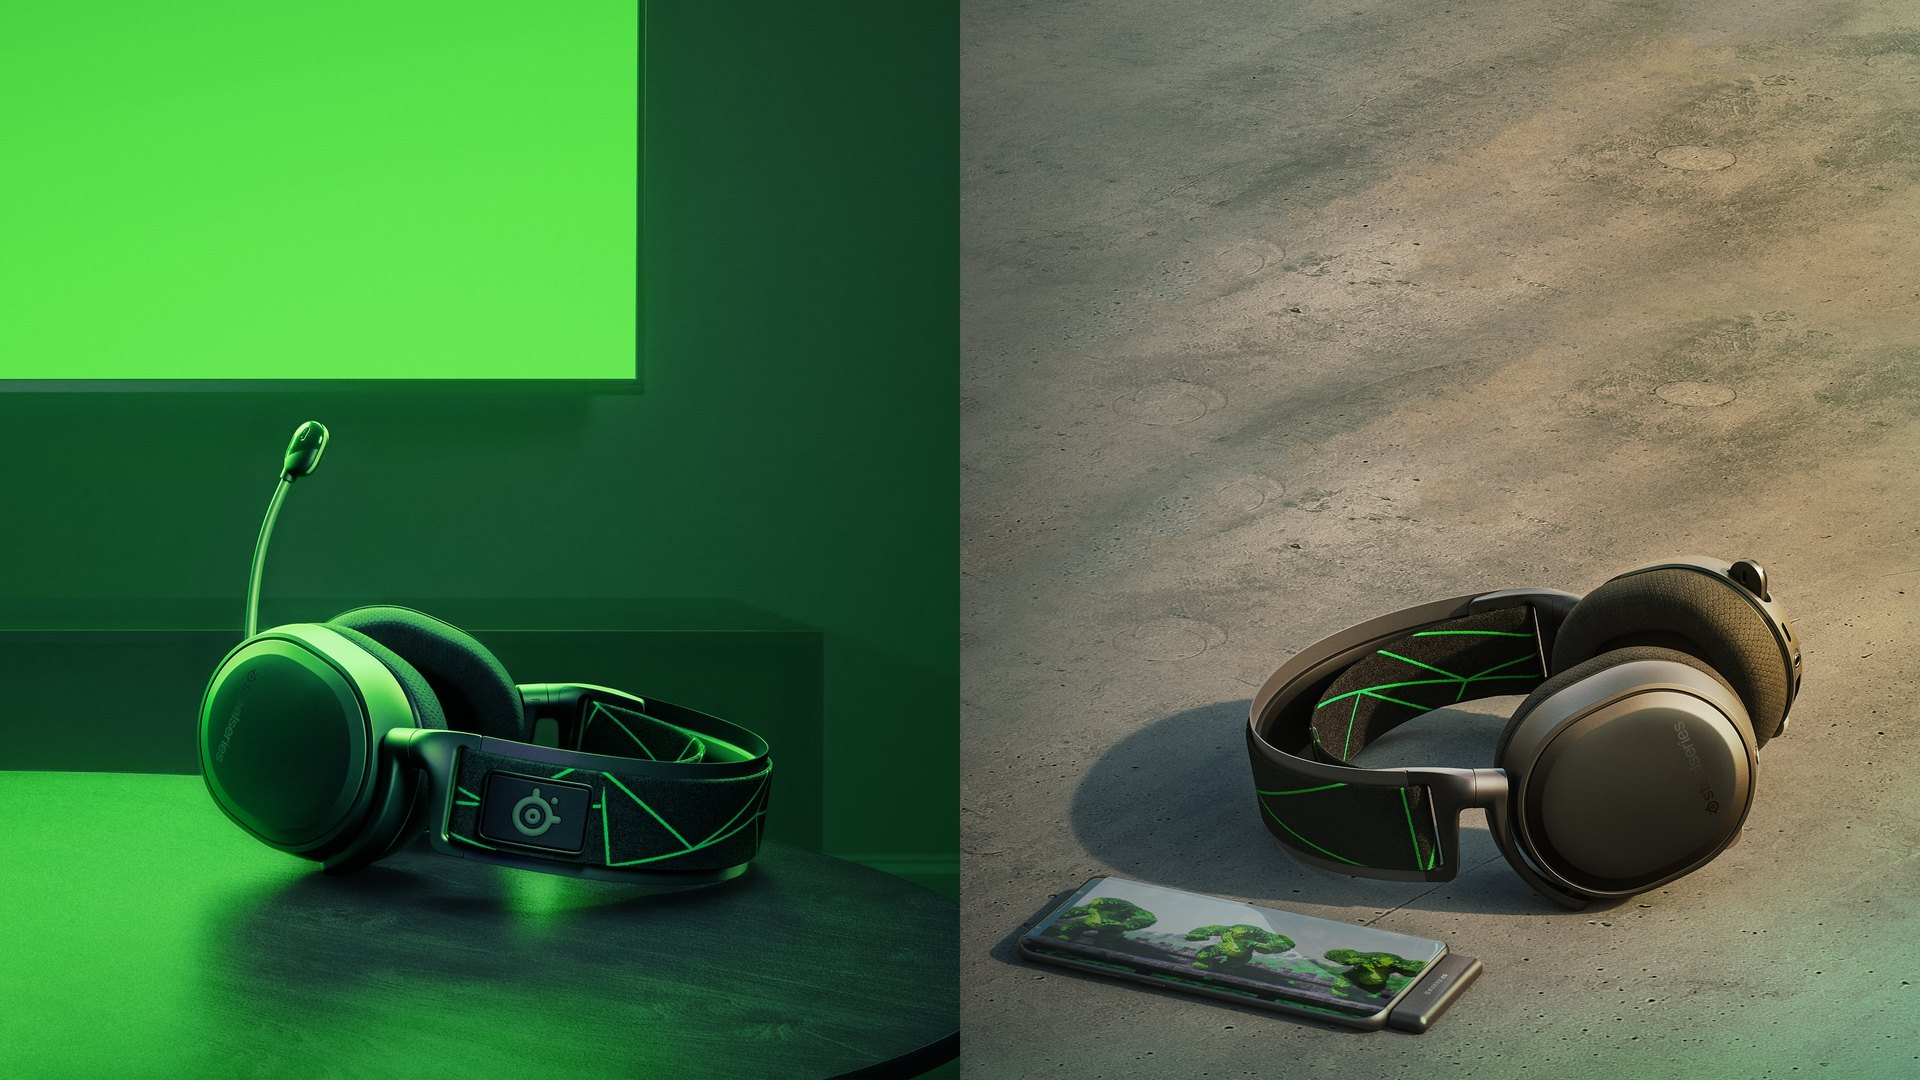 Dual images of the arctis 7x headset to show that headset can be wireless no matter where you take it.